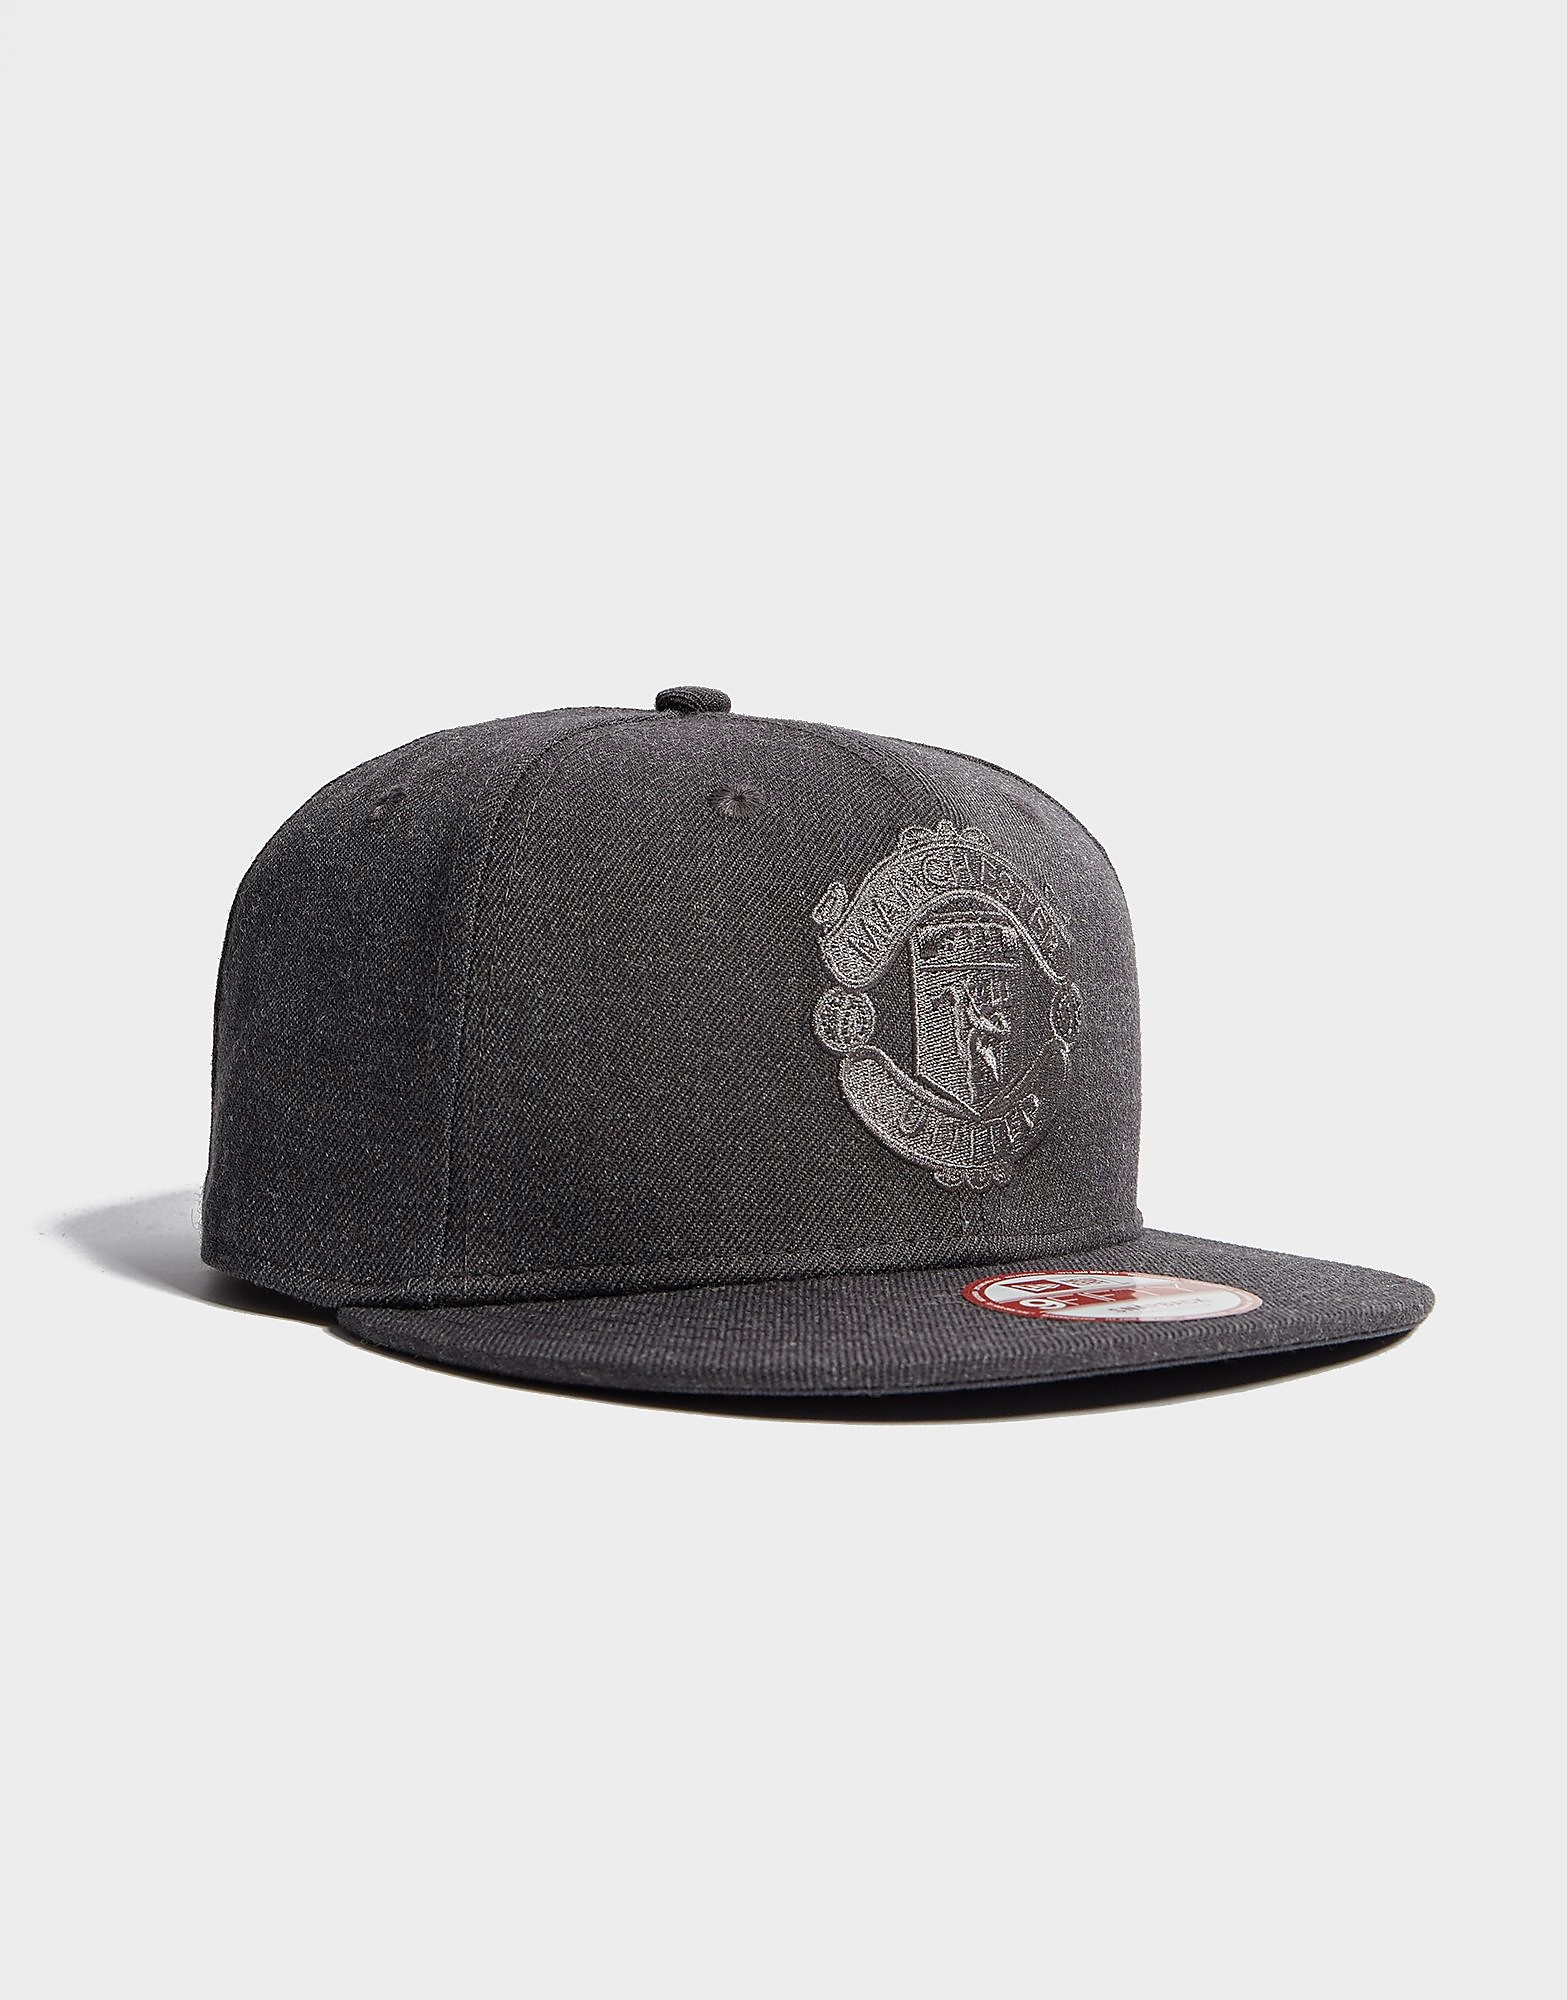 New Era 9Fifty Manchester United FC Snapback